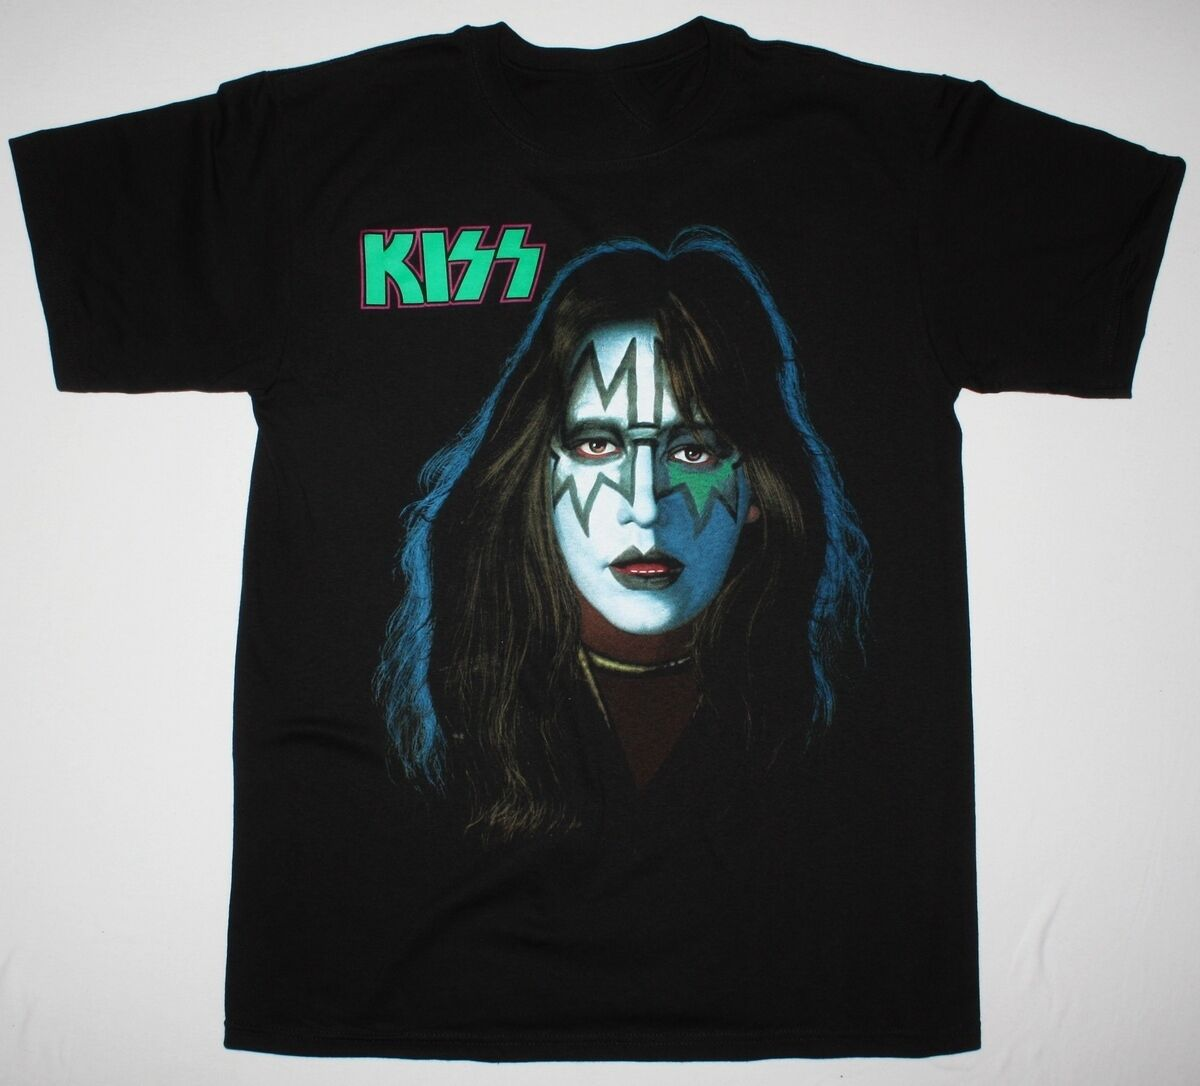 KISS ACE FREHLEY BLACK <font><b>T</b></font> <font><b>SHIRT</b></font> HARD ROCK VINNIE NT INVASION <font><b>RATT</b></font> <font><b>Men</b></font> Women Unisex Fashion tshirt Free Shipping image